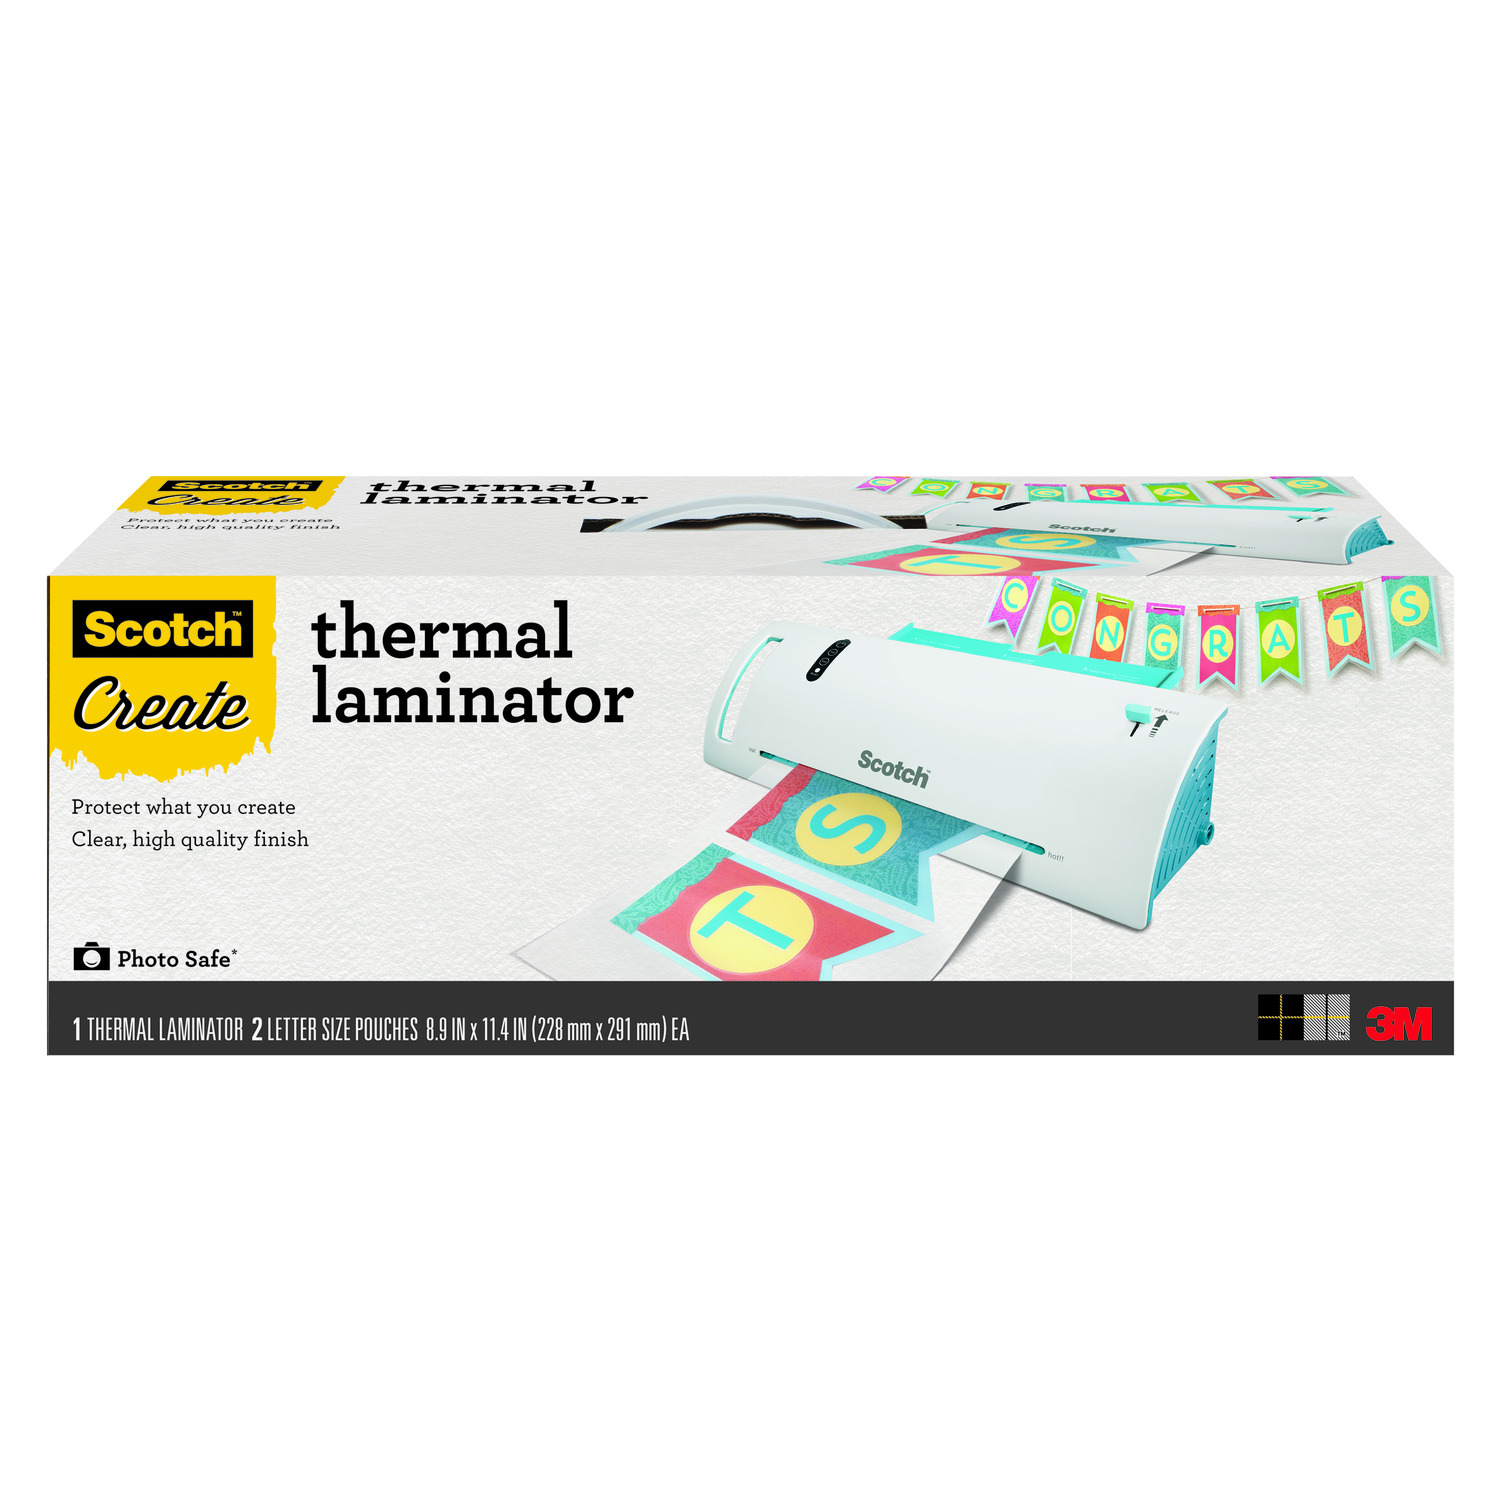 Scotch Craft Thermal Laminator Plus Letter Size Pouches, 3 Count